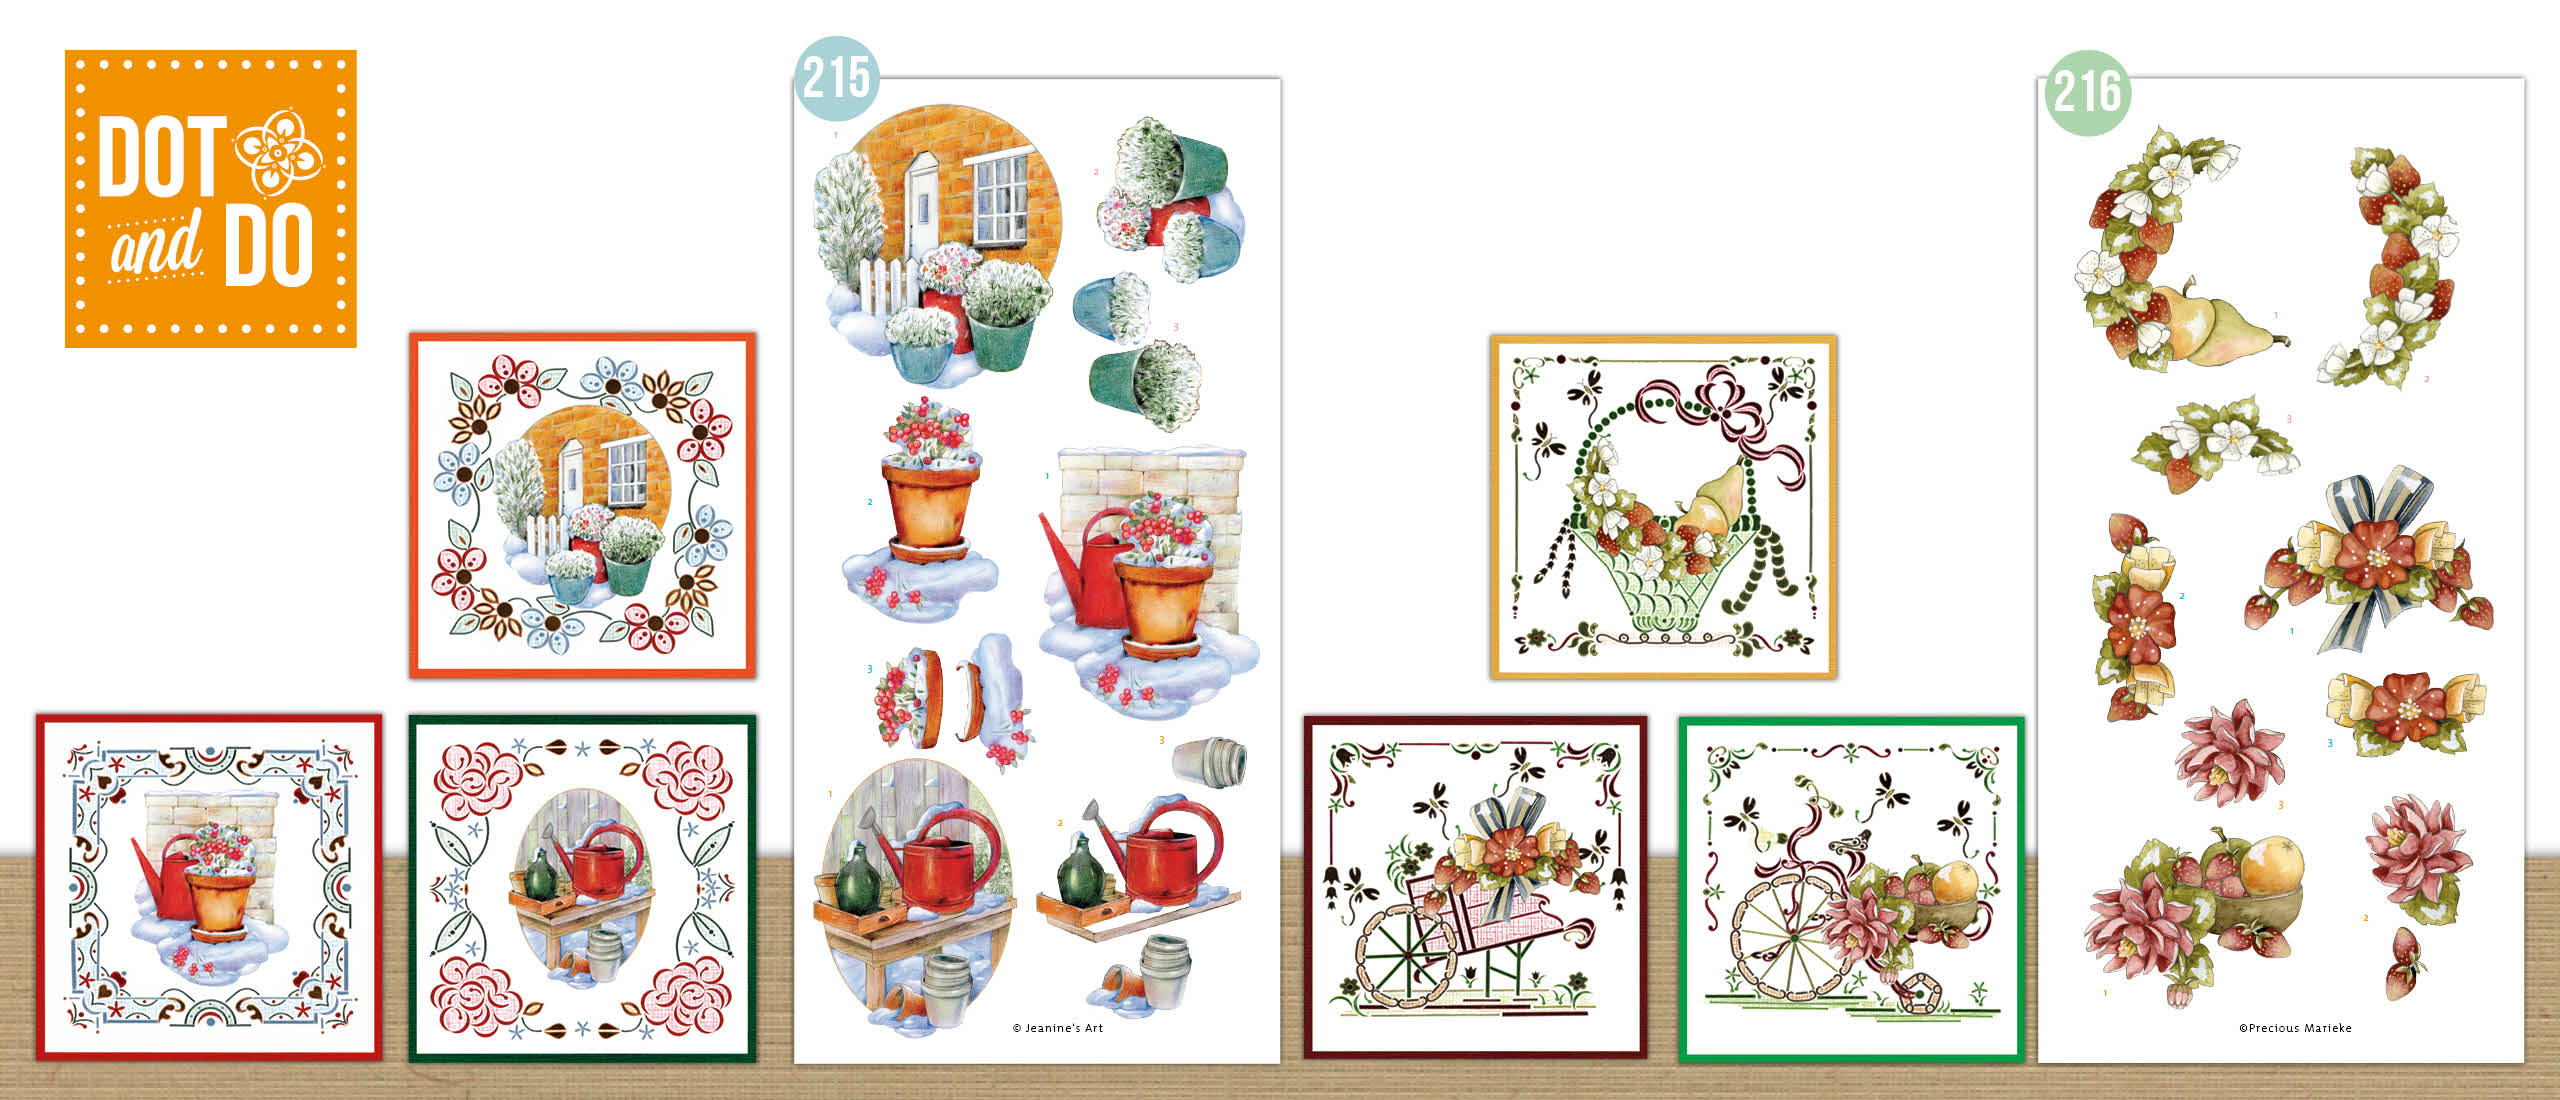 Dot and Do 215-216 - Jeanine's Art - Winter Charme - Watering Can - Precious Marieke - Flowers and Fruits - Flowers and Strawberries (DODO215-DODO216)